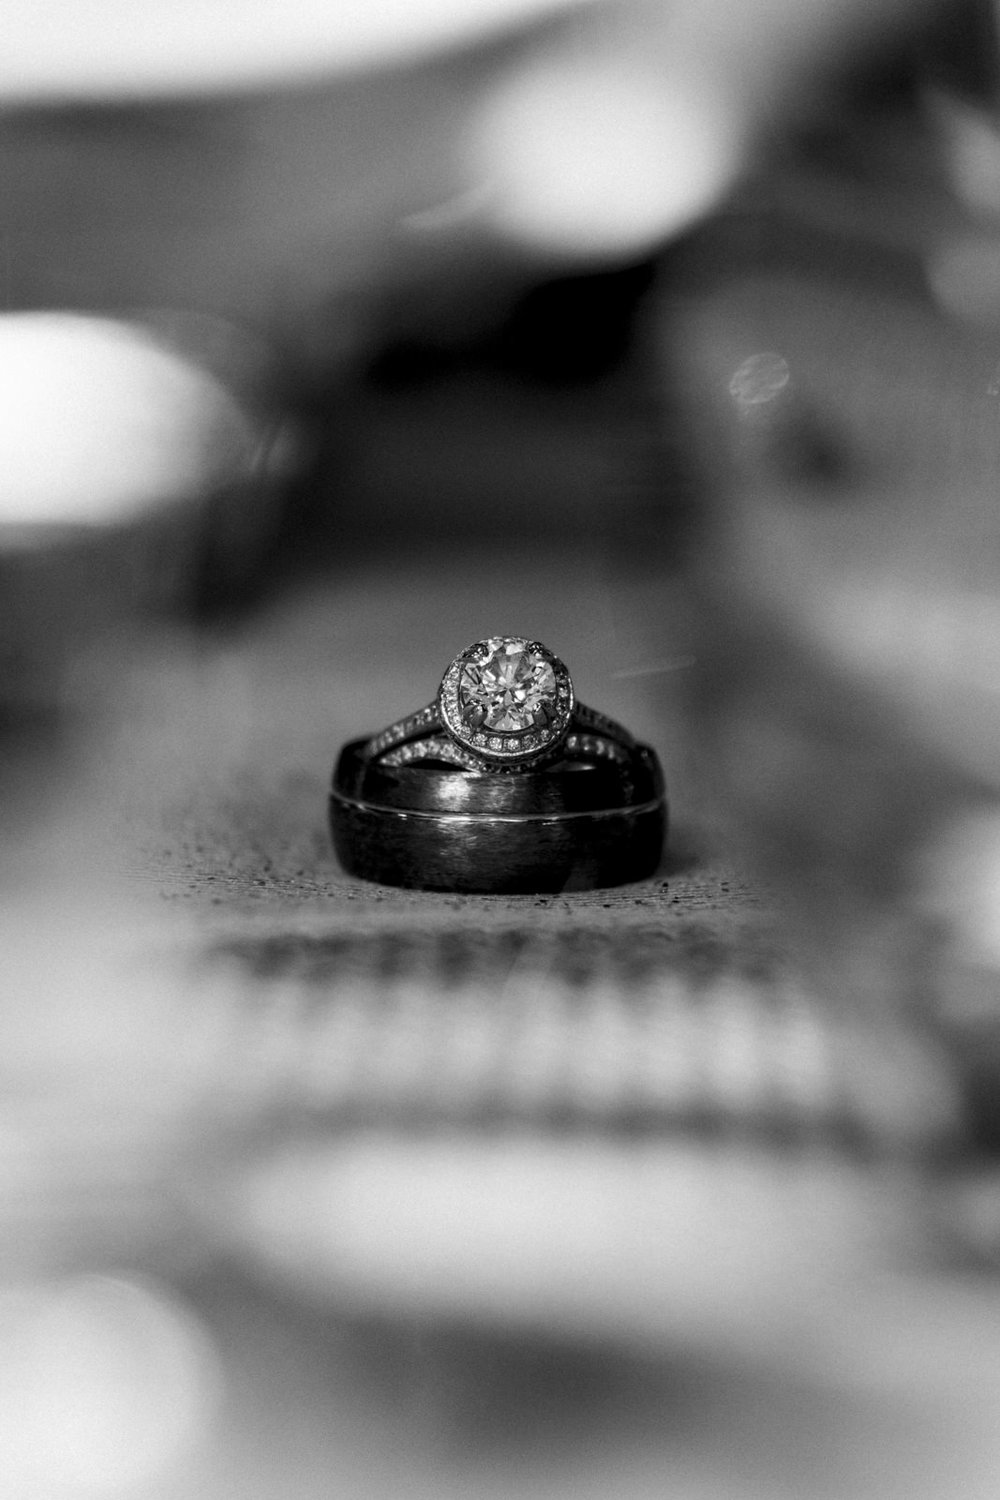 Black and white picture of the wedding ring.